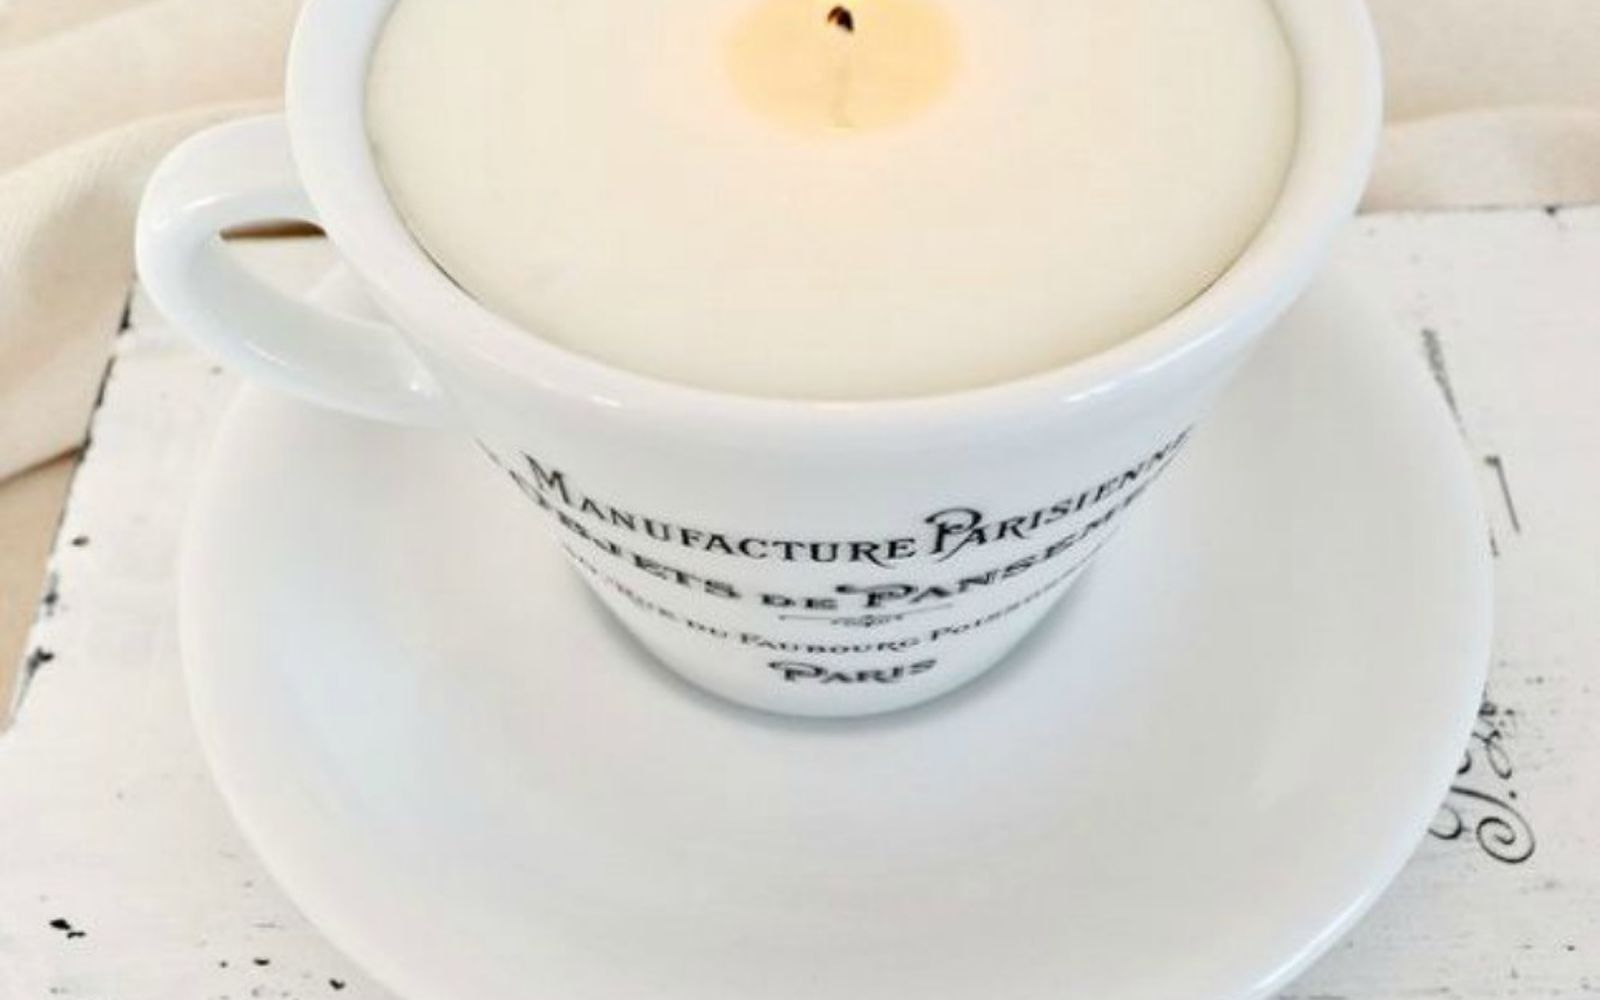 s 15 gorgeous homemade candle ideas you re going to want to try, These french teacup soy scented candles